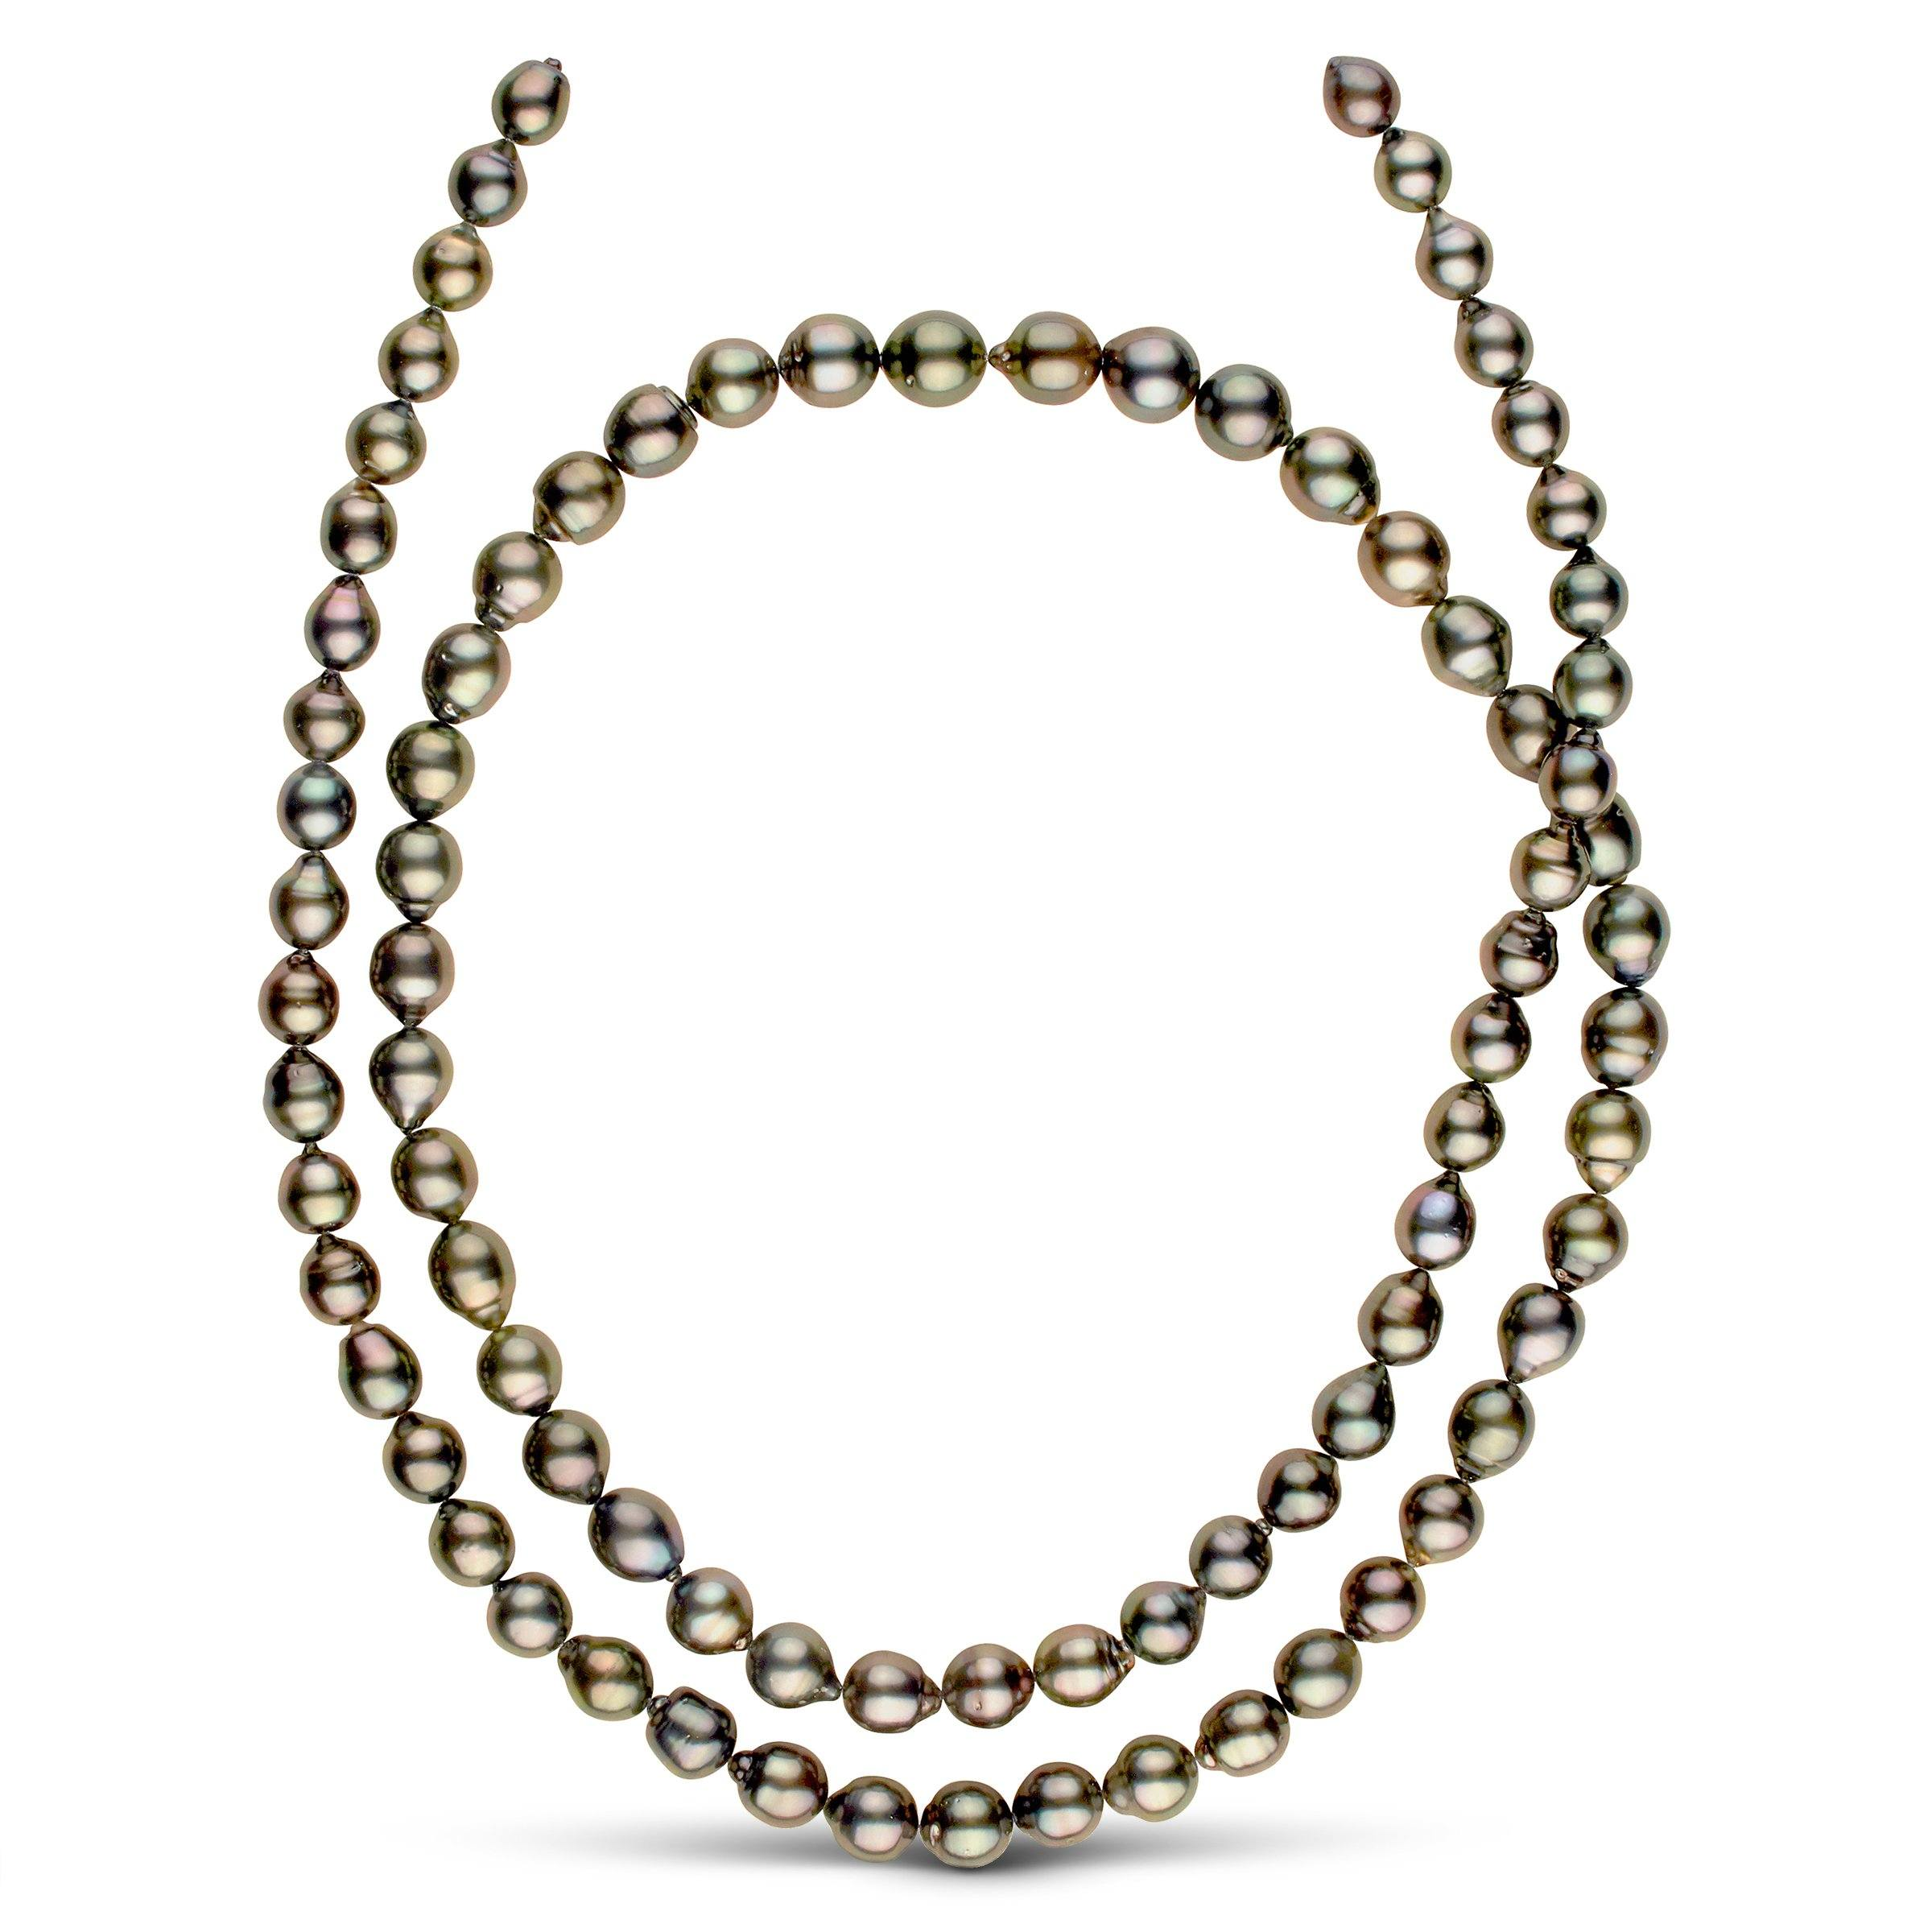 36-inch 8.5-10.8 mm AA+/AAA Drop Tahitian Pearl Necklace